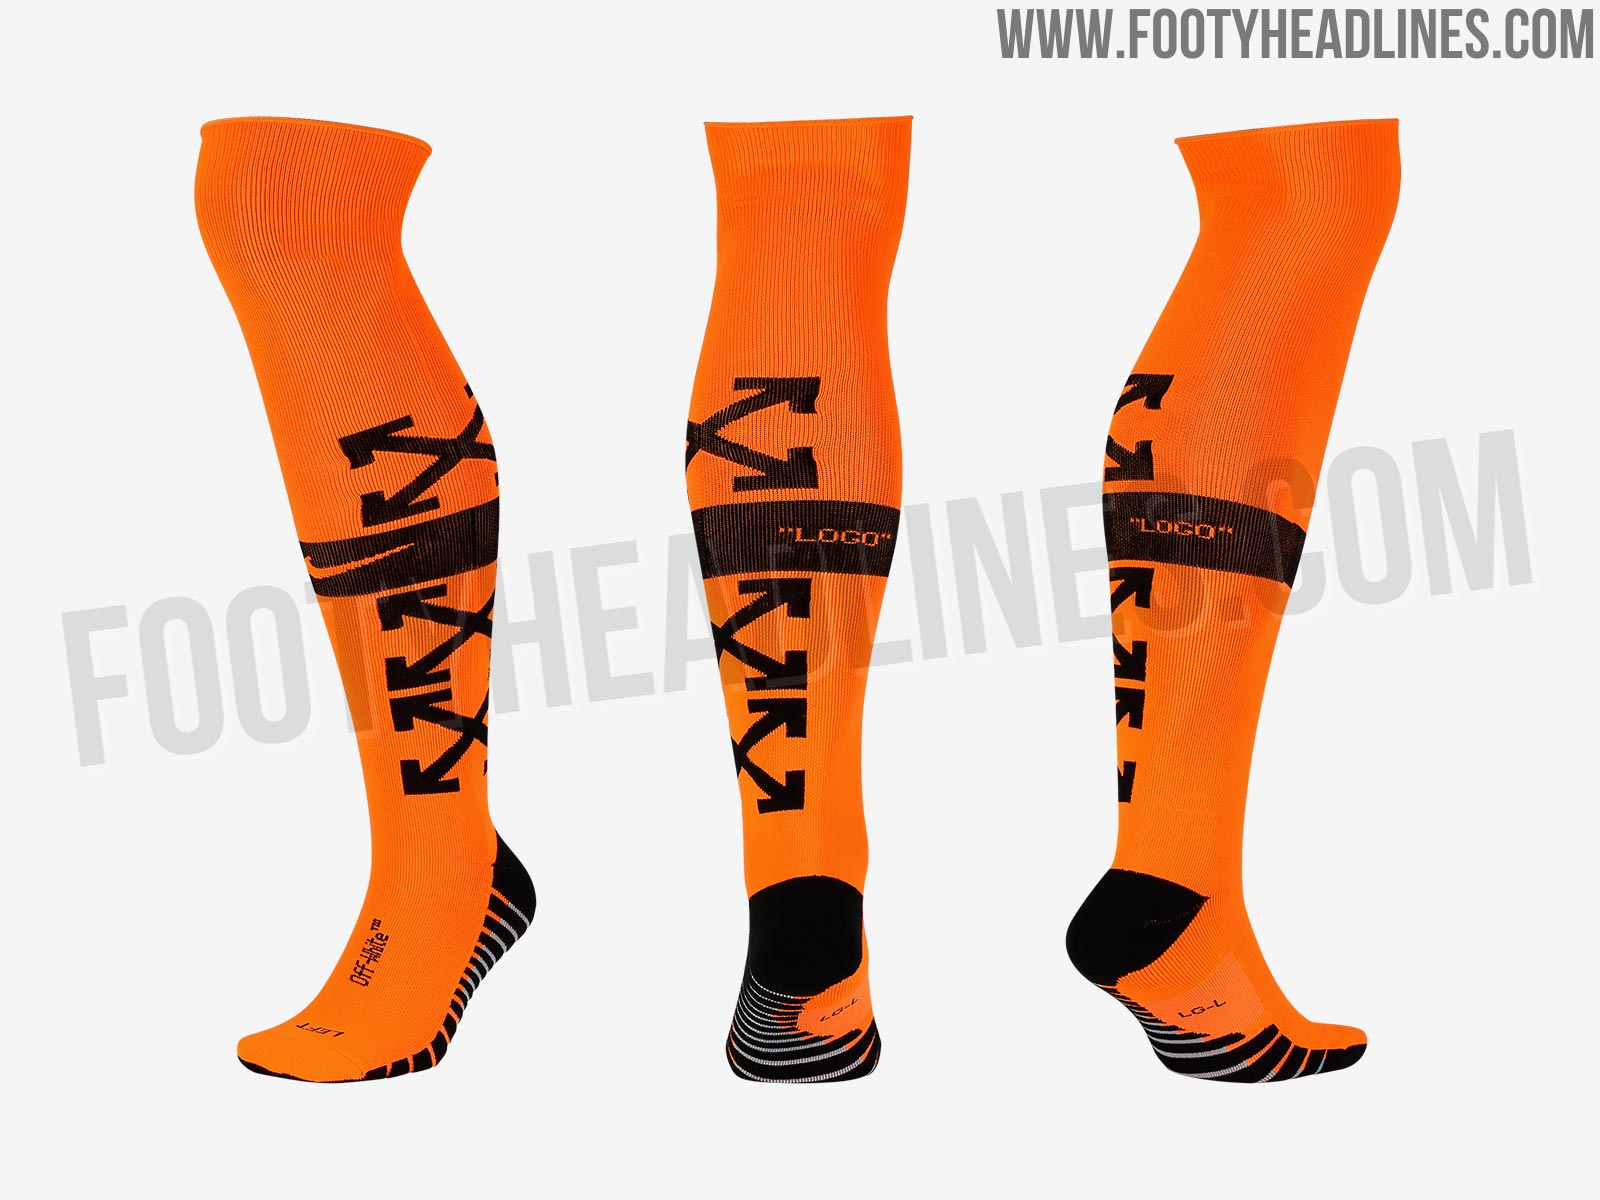 3320a5283ab Nike Football Off-White Socks. The socks are colored in a garish orange  with a black band around the calf and three  X  logos on the outside.